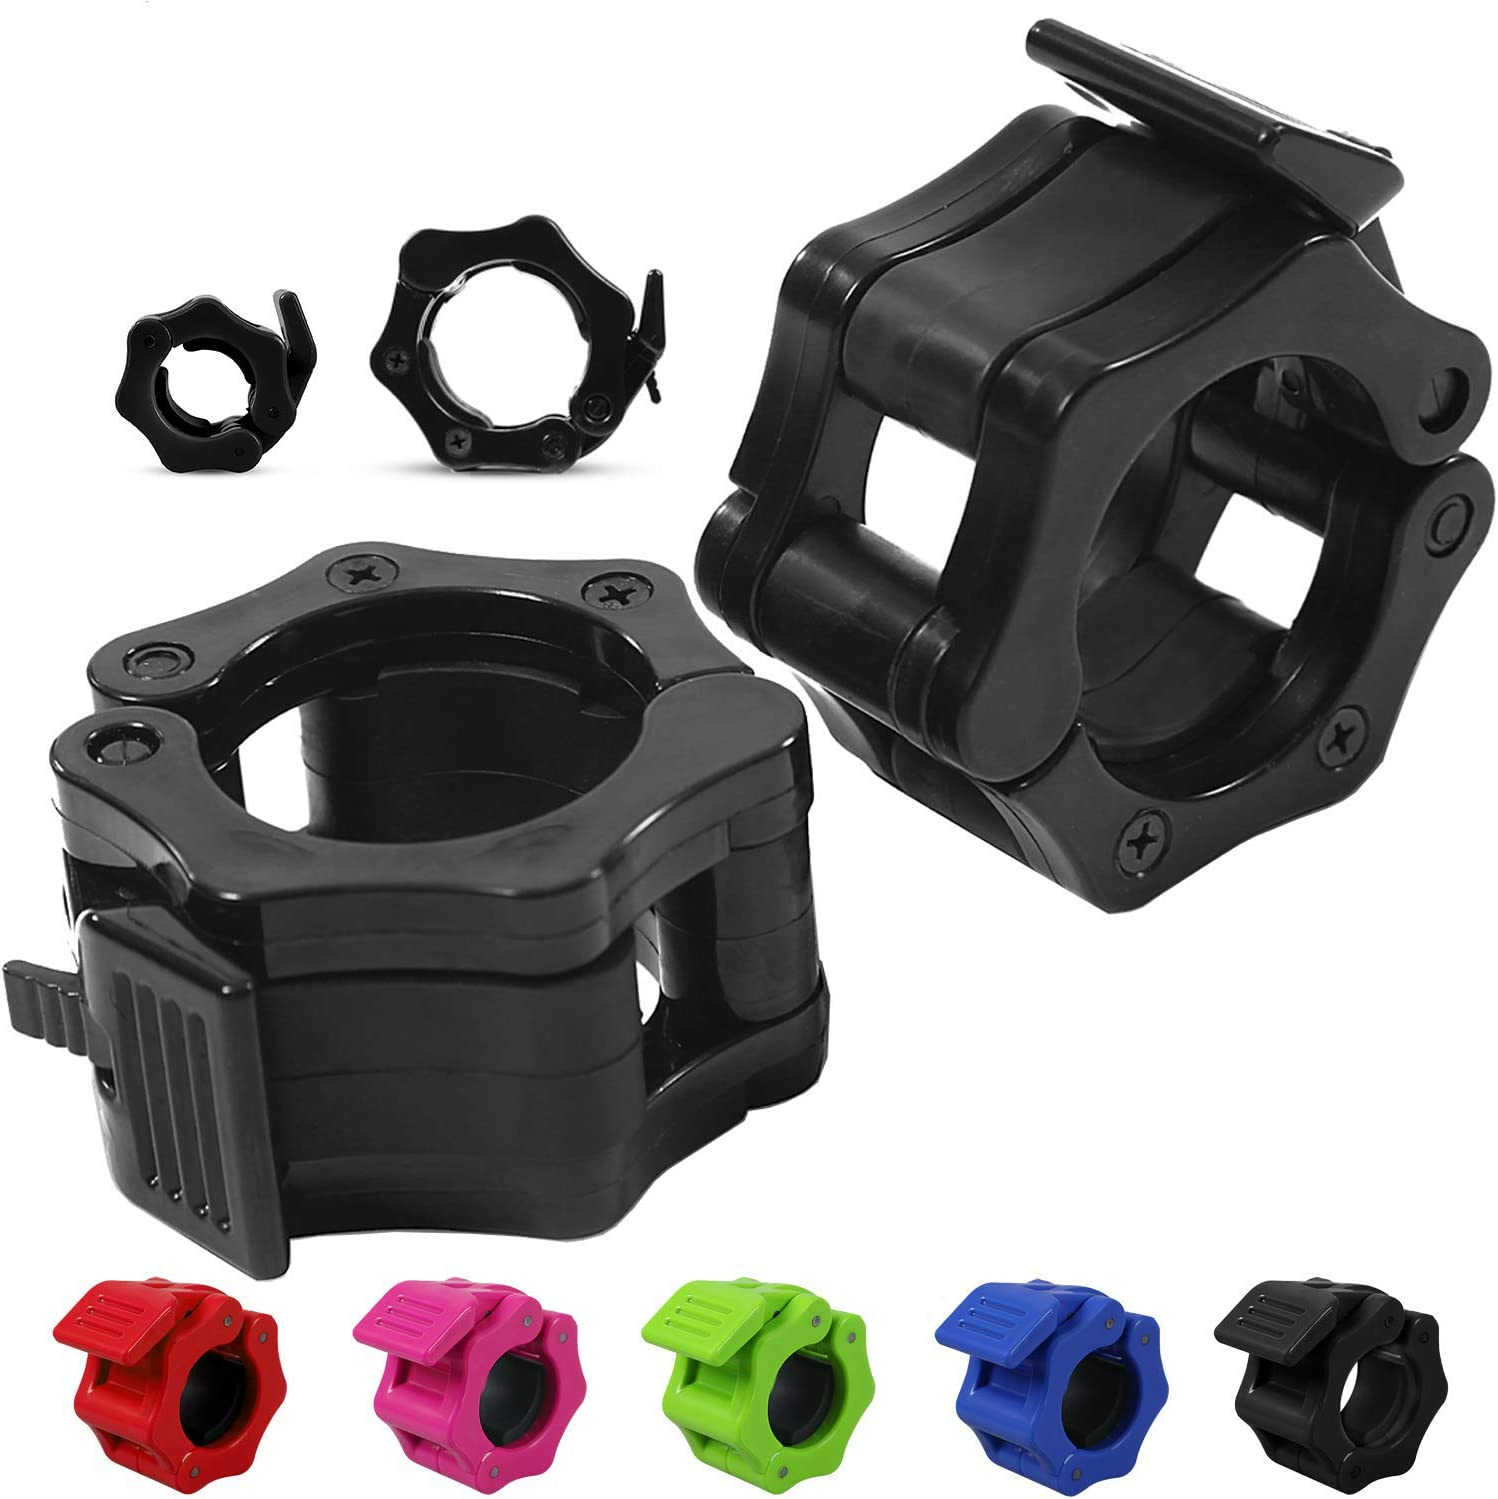 """Choose Size 1/"""" or 2/"""" Day 1 Fitness Quick-Release Safety Collars Set of 2 Weight Locking Clips: 1 inch Standard Weightlifting OR 2 inch Olympic Bars 5 Color Options Heavy-Duty Plate Clamps"""